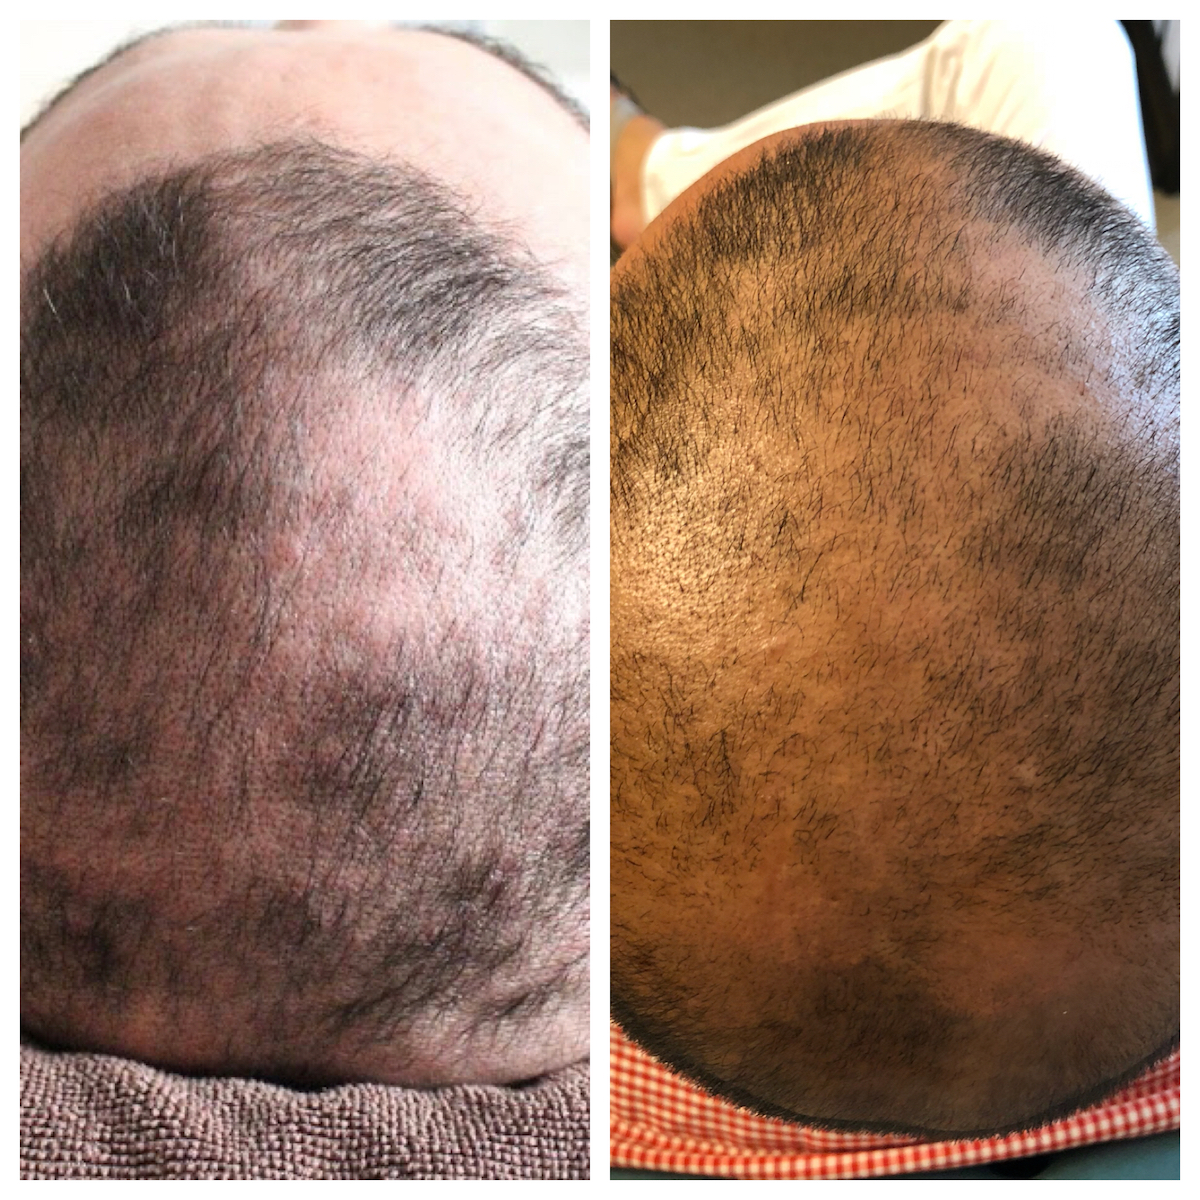 42-year old hair restoration patient